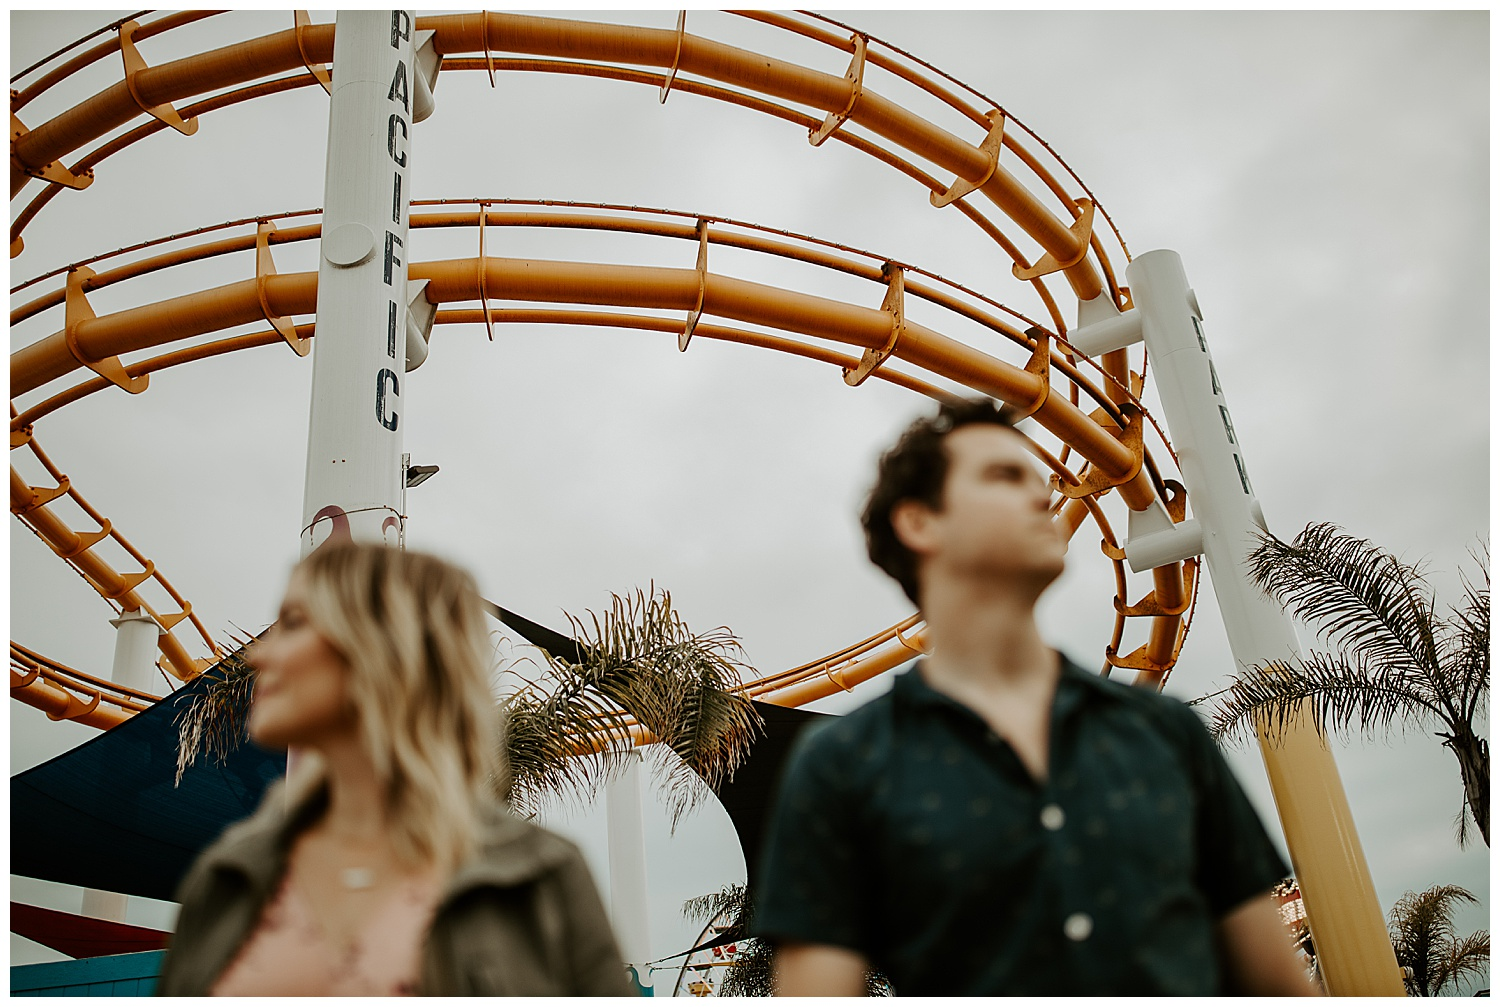 Laken-Mackenzie-Photography-Santa-Monica-Pier-Couples-Session-Kami-TJ-Malibu-Couples-Session11.jpg